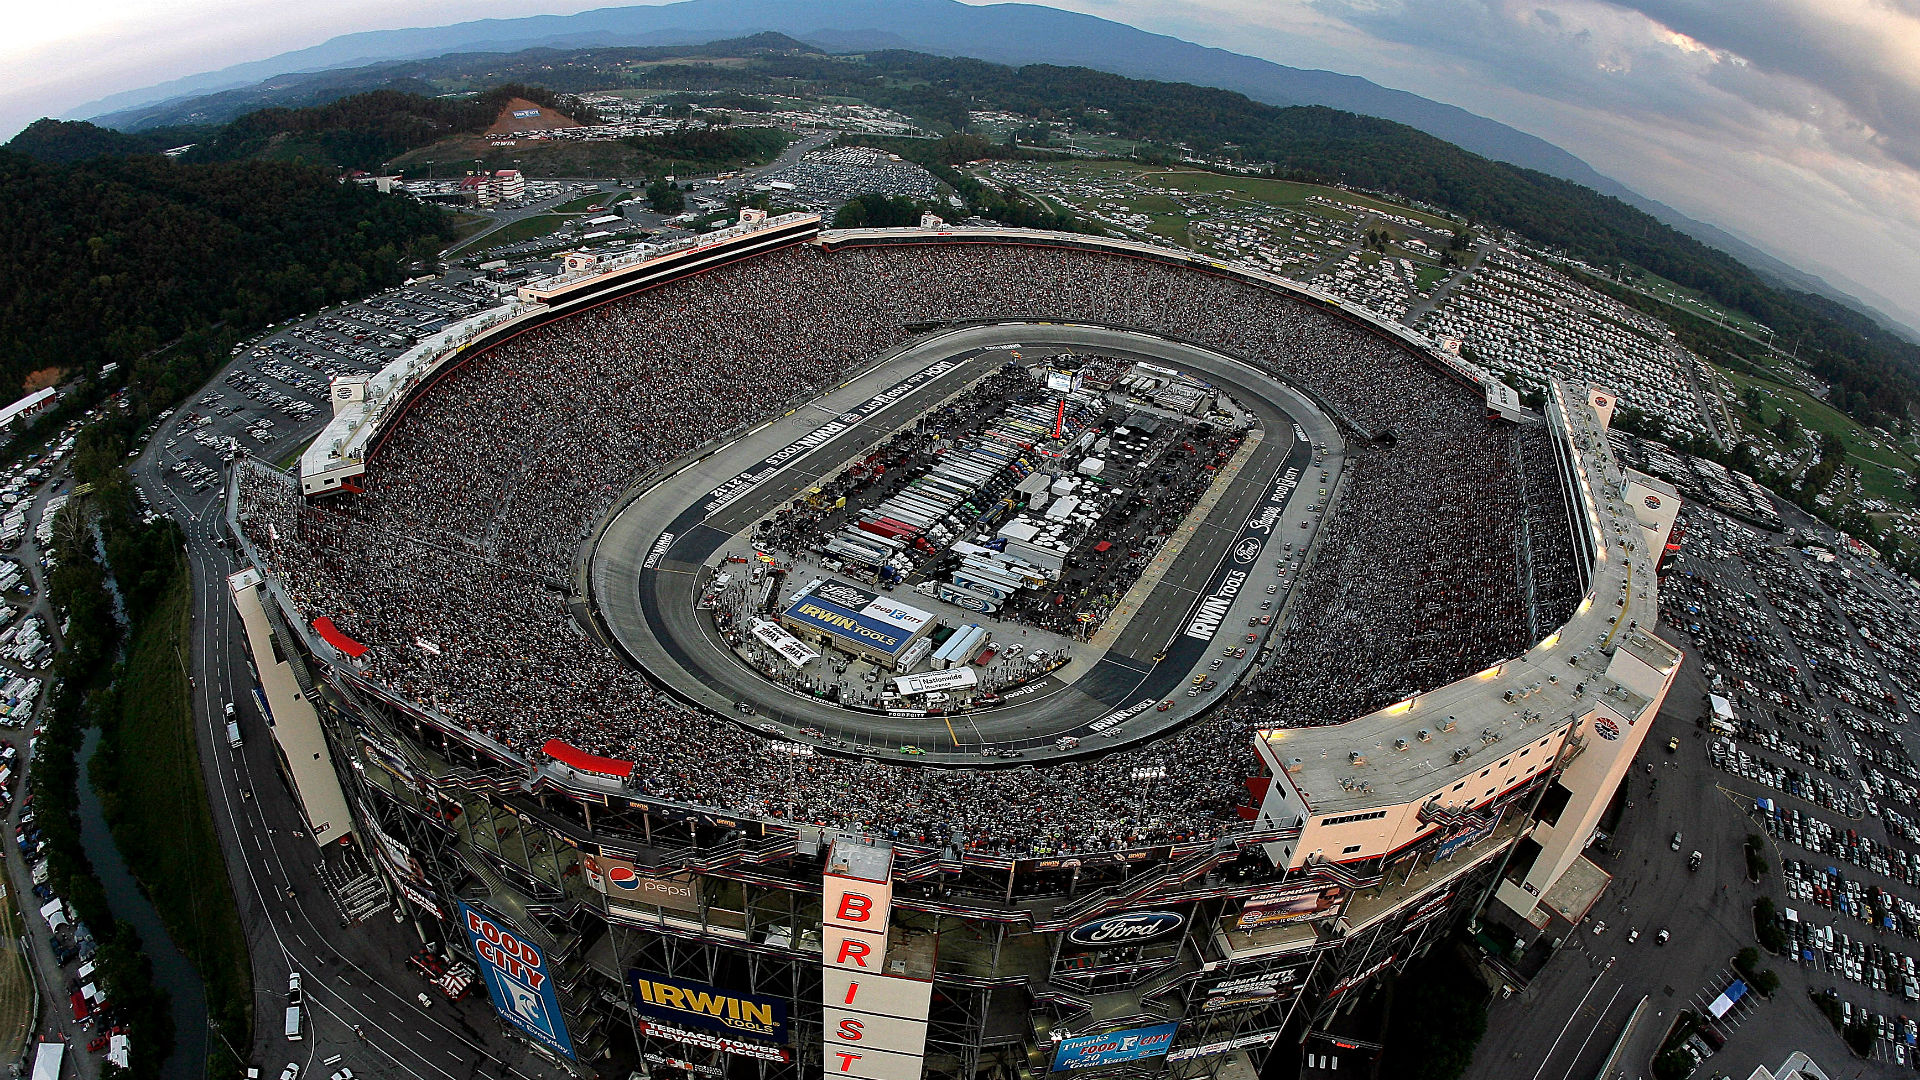 Night race at Bristol? Storms could force change in schedule